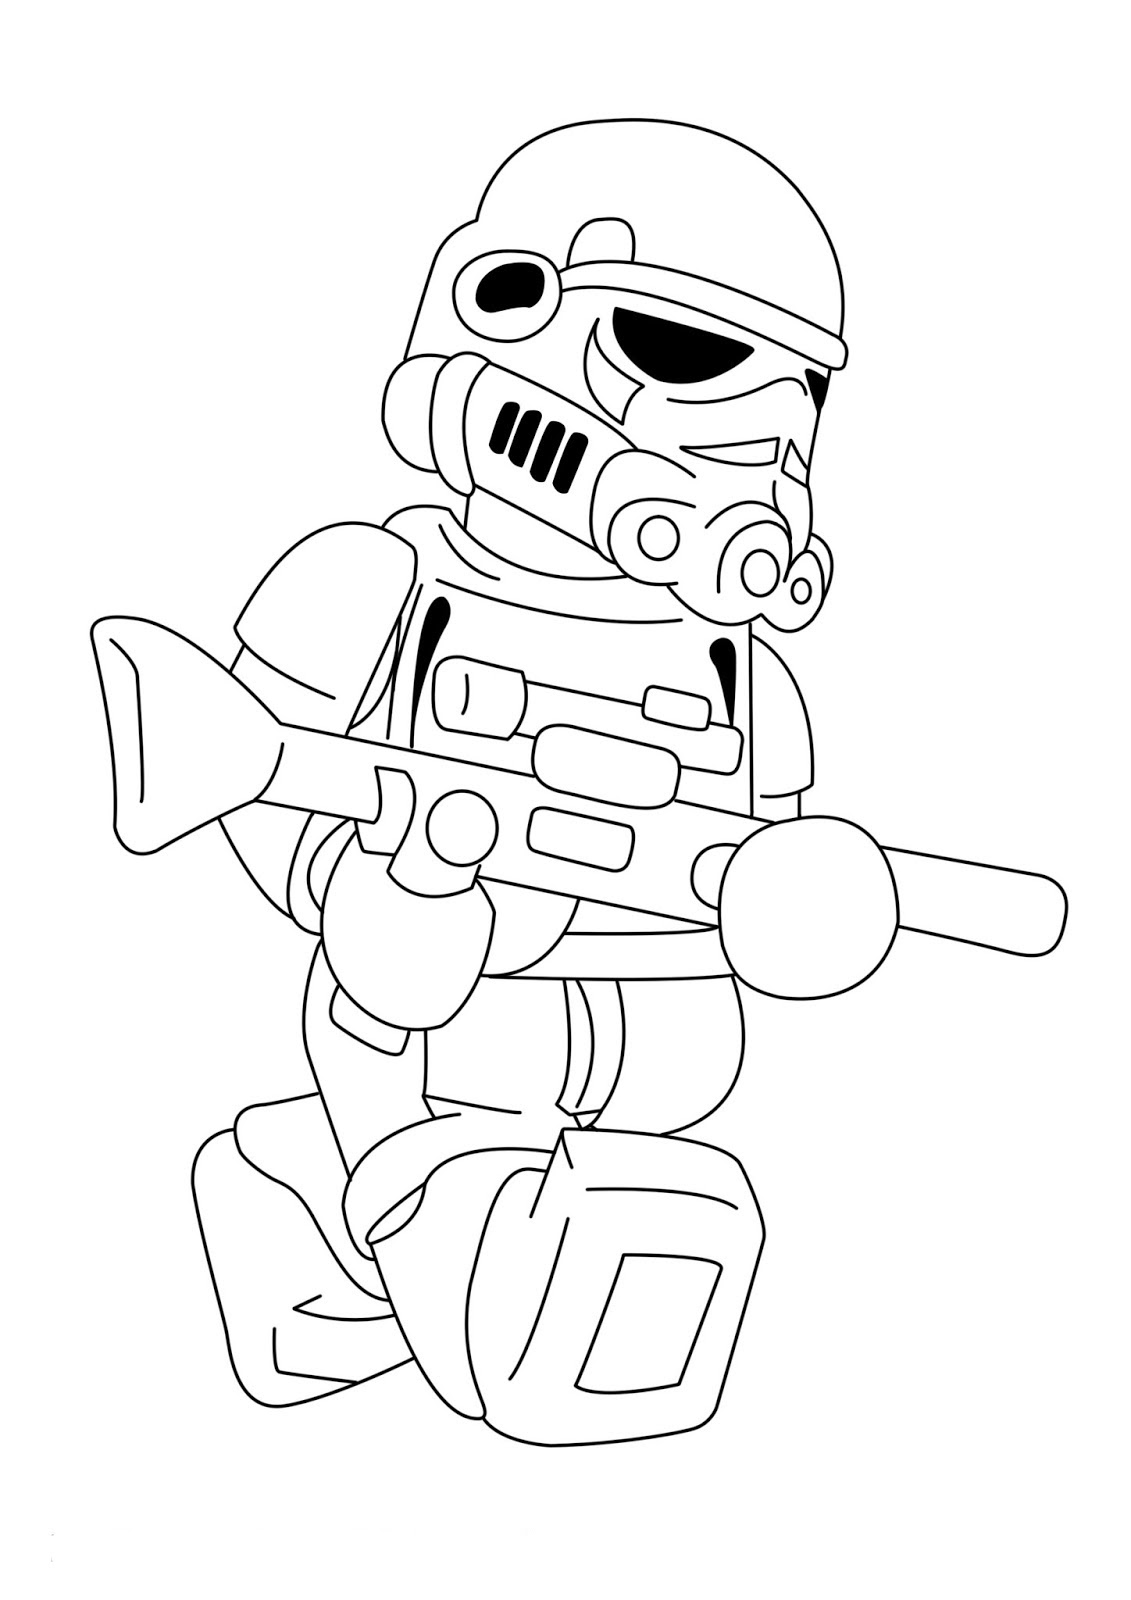 Download Lego Star Wars Coloring Pages - Best Coloring Pages For Kids